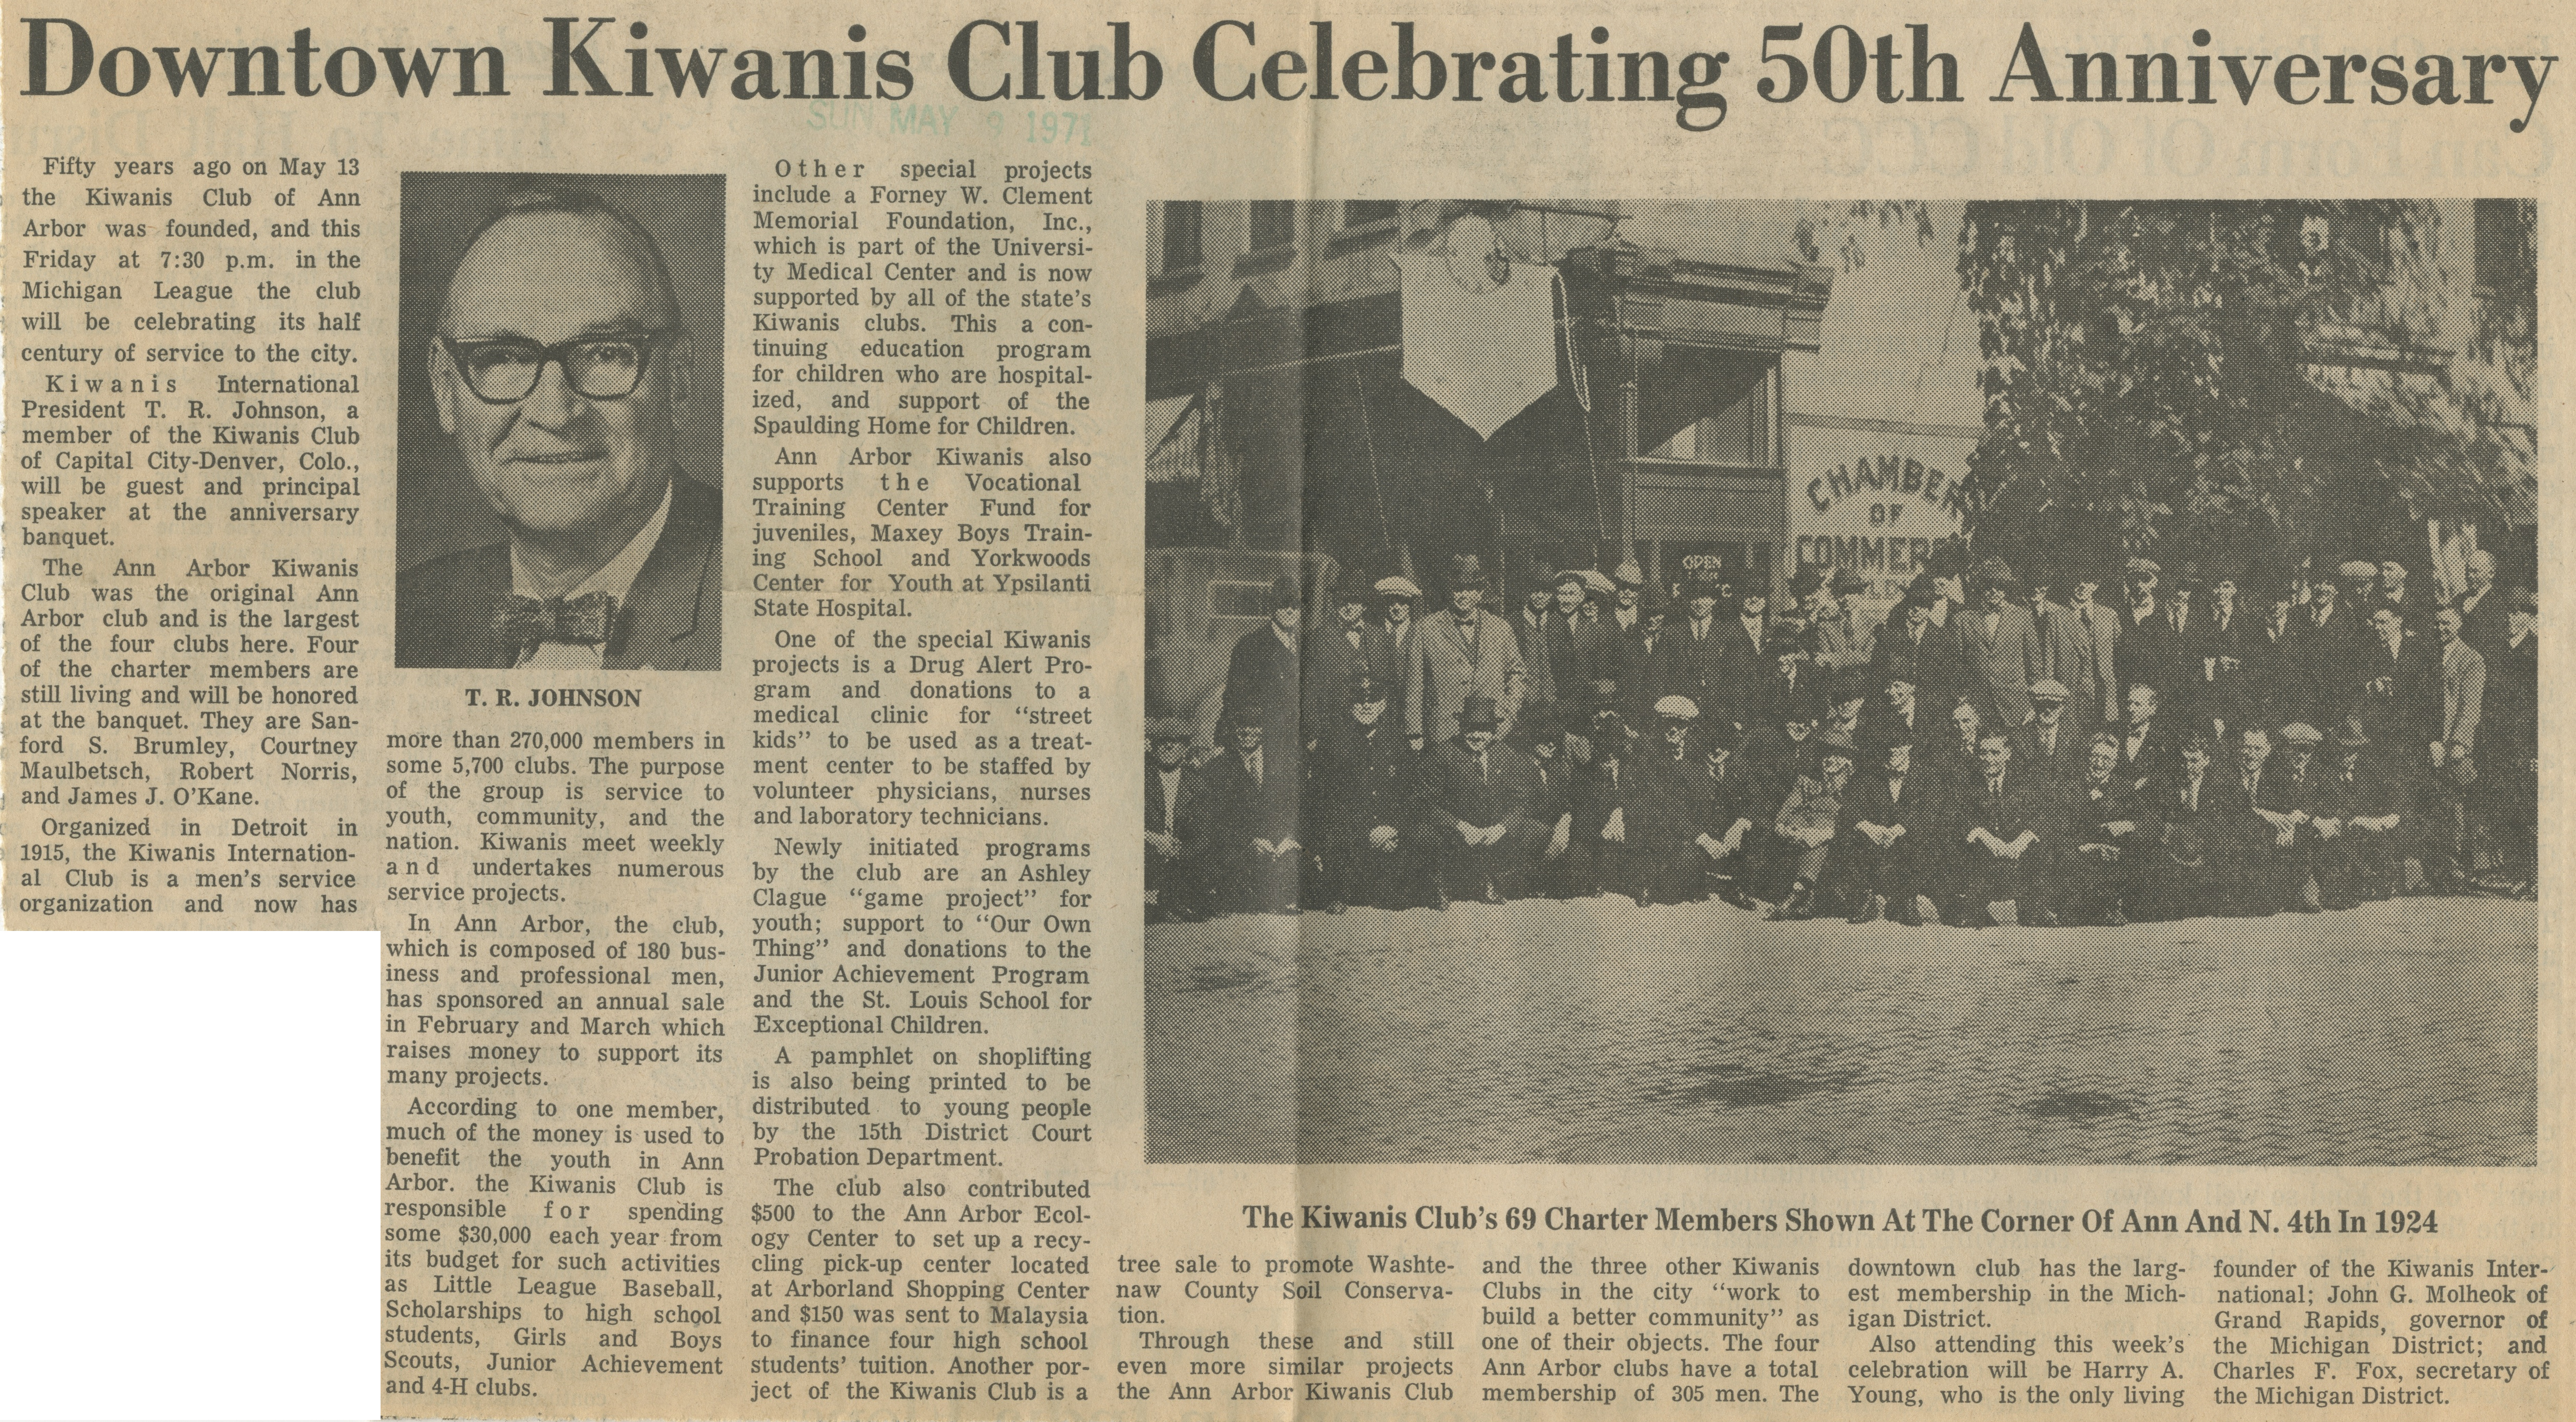 Downtown Kiwanis Club Celebrating 50th Anniversary image